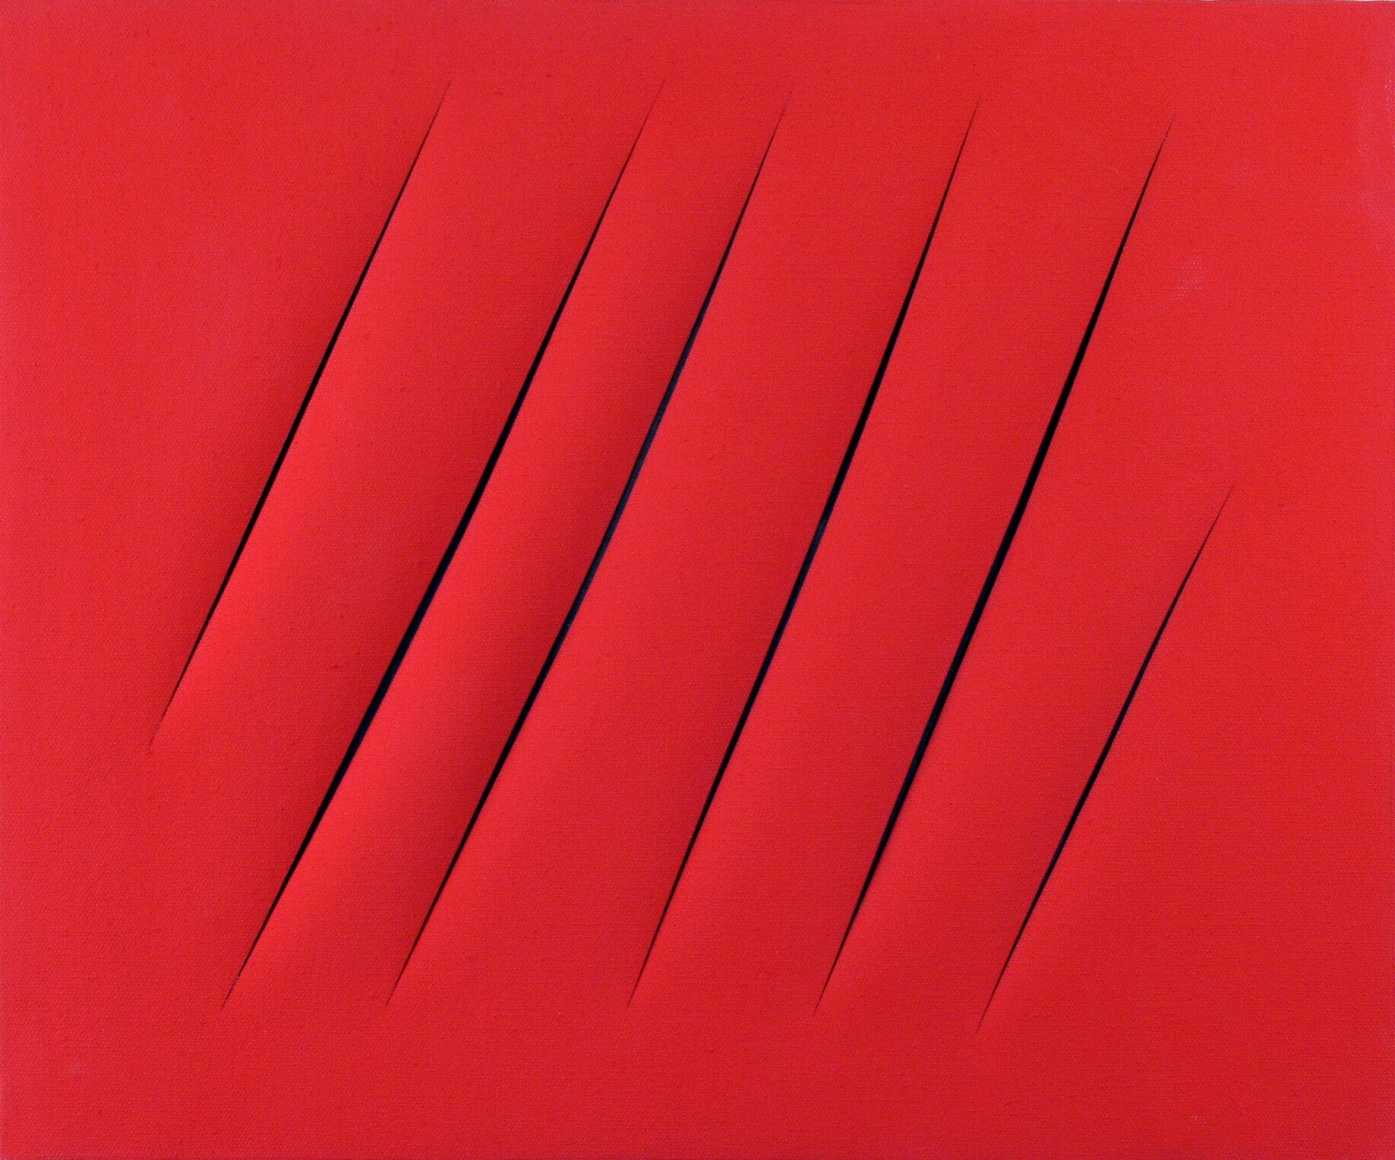 Lucio Fontana, Concetto Spaziale Attese, 1964, Water-based paint on canvas, 20 7/8 x 25 5/8 in. (53 x 65cm)